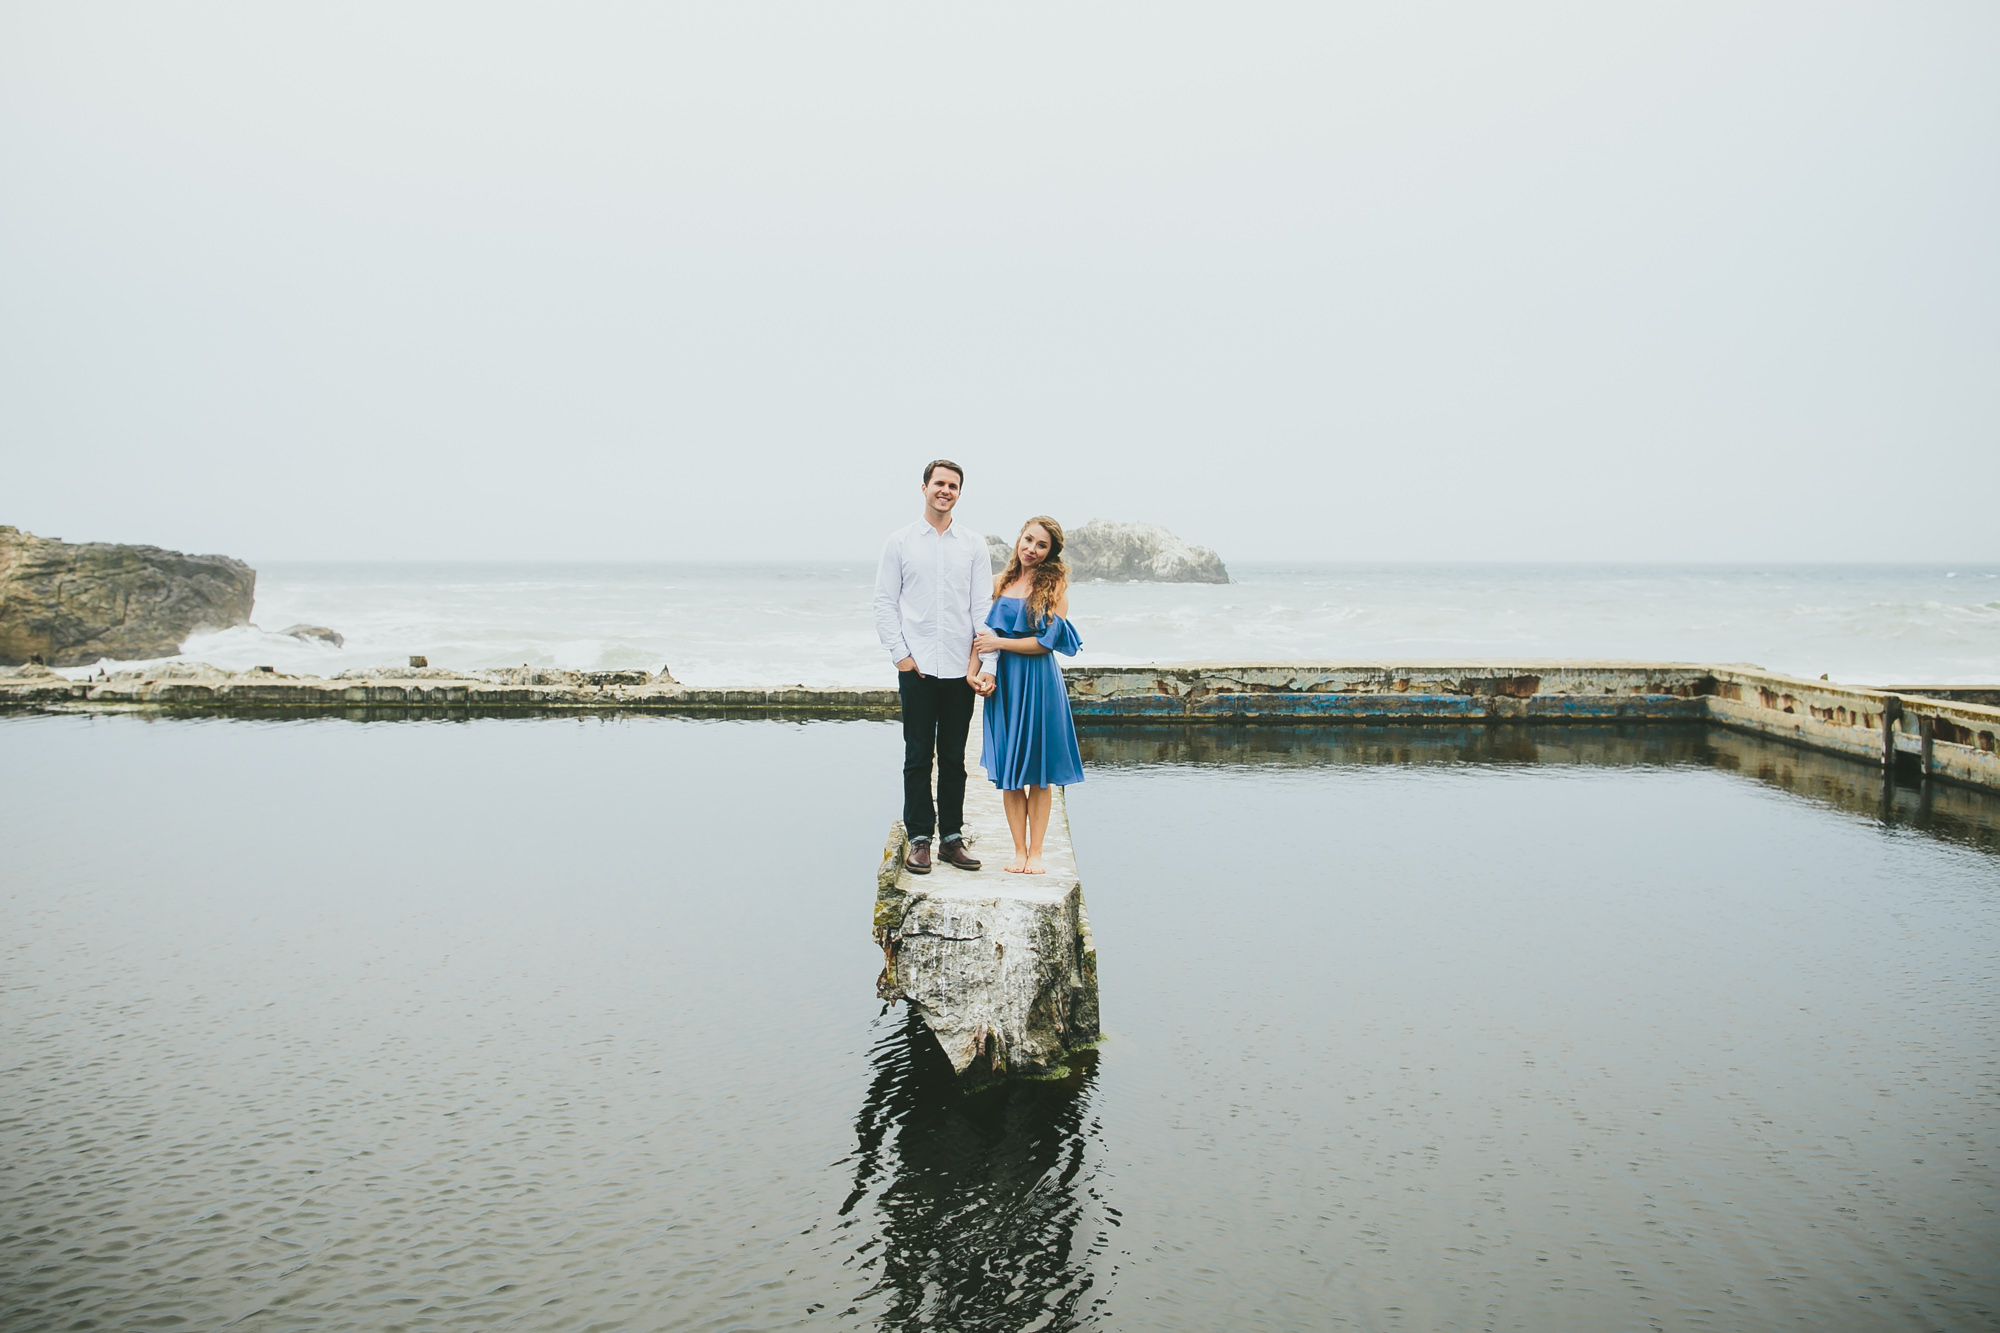 Emily+Paul-ENGAGEMENT_KellyBoitano-WEB-27